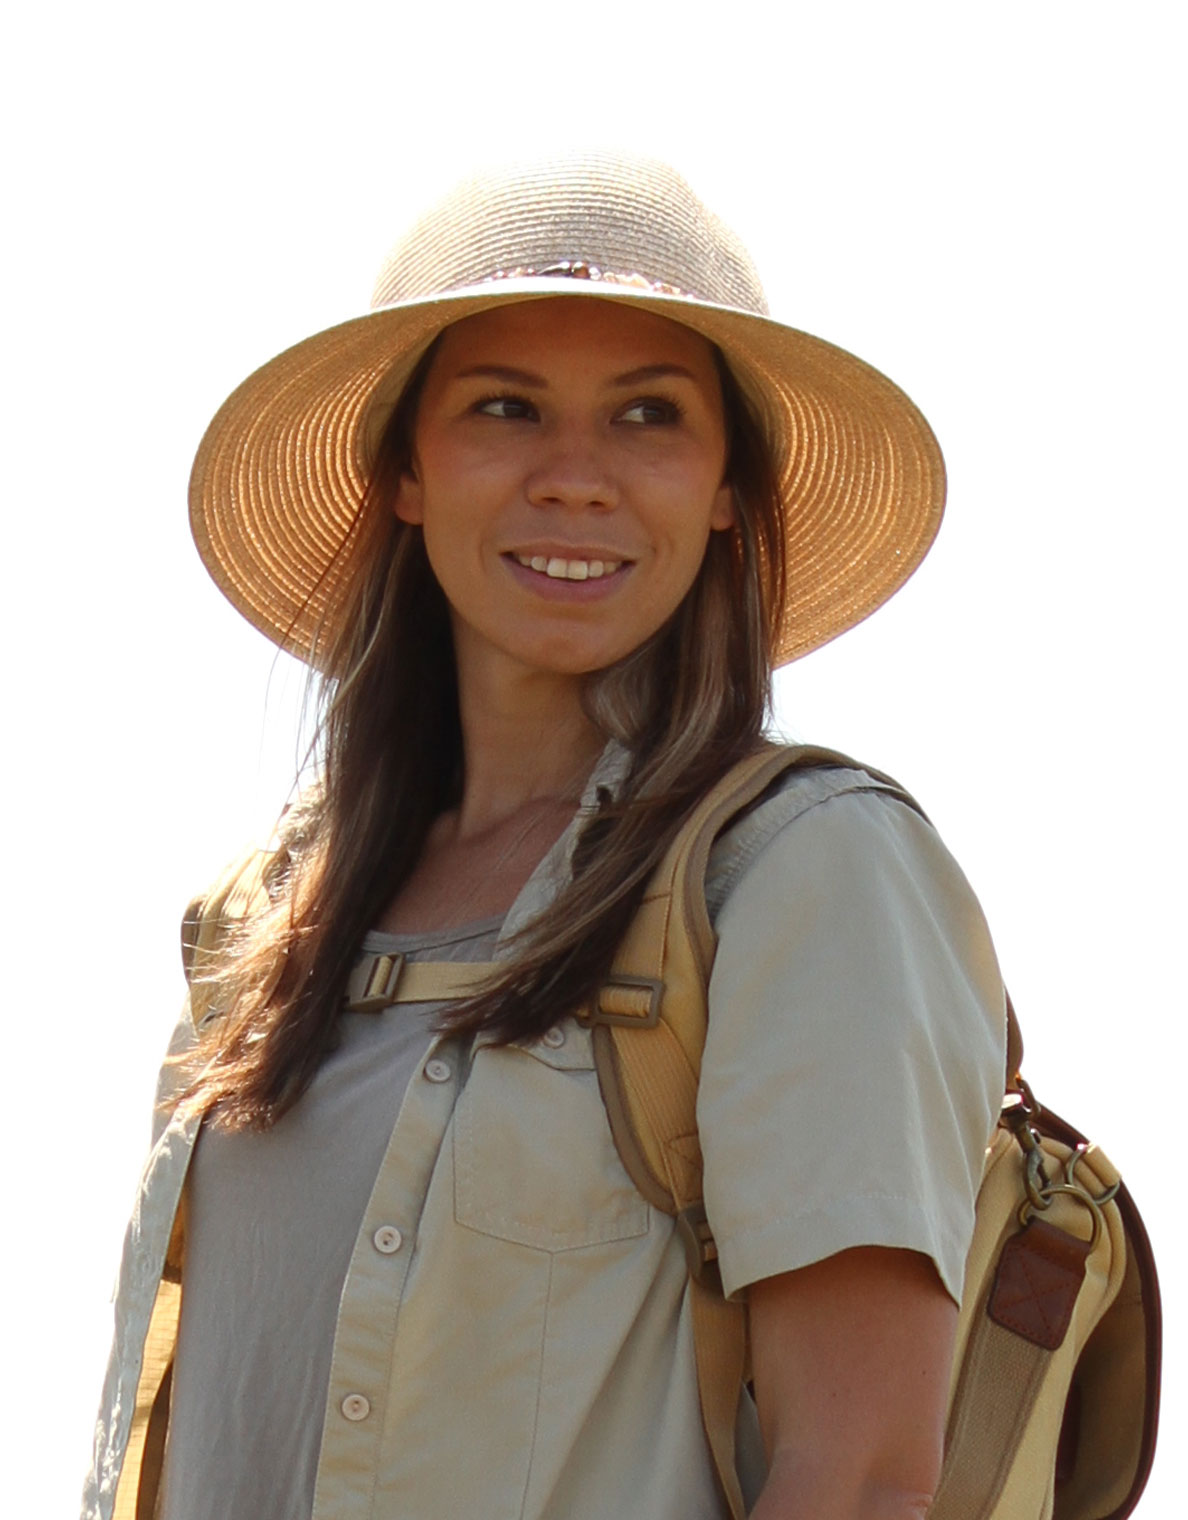 Women's indie-style safari hat in natural colour. Get safari hat sun protection for travel, outdoor, & safari